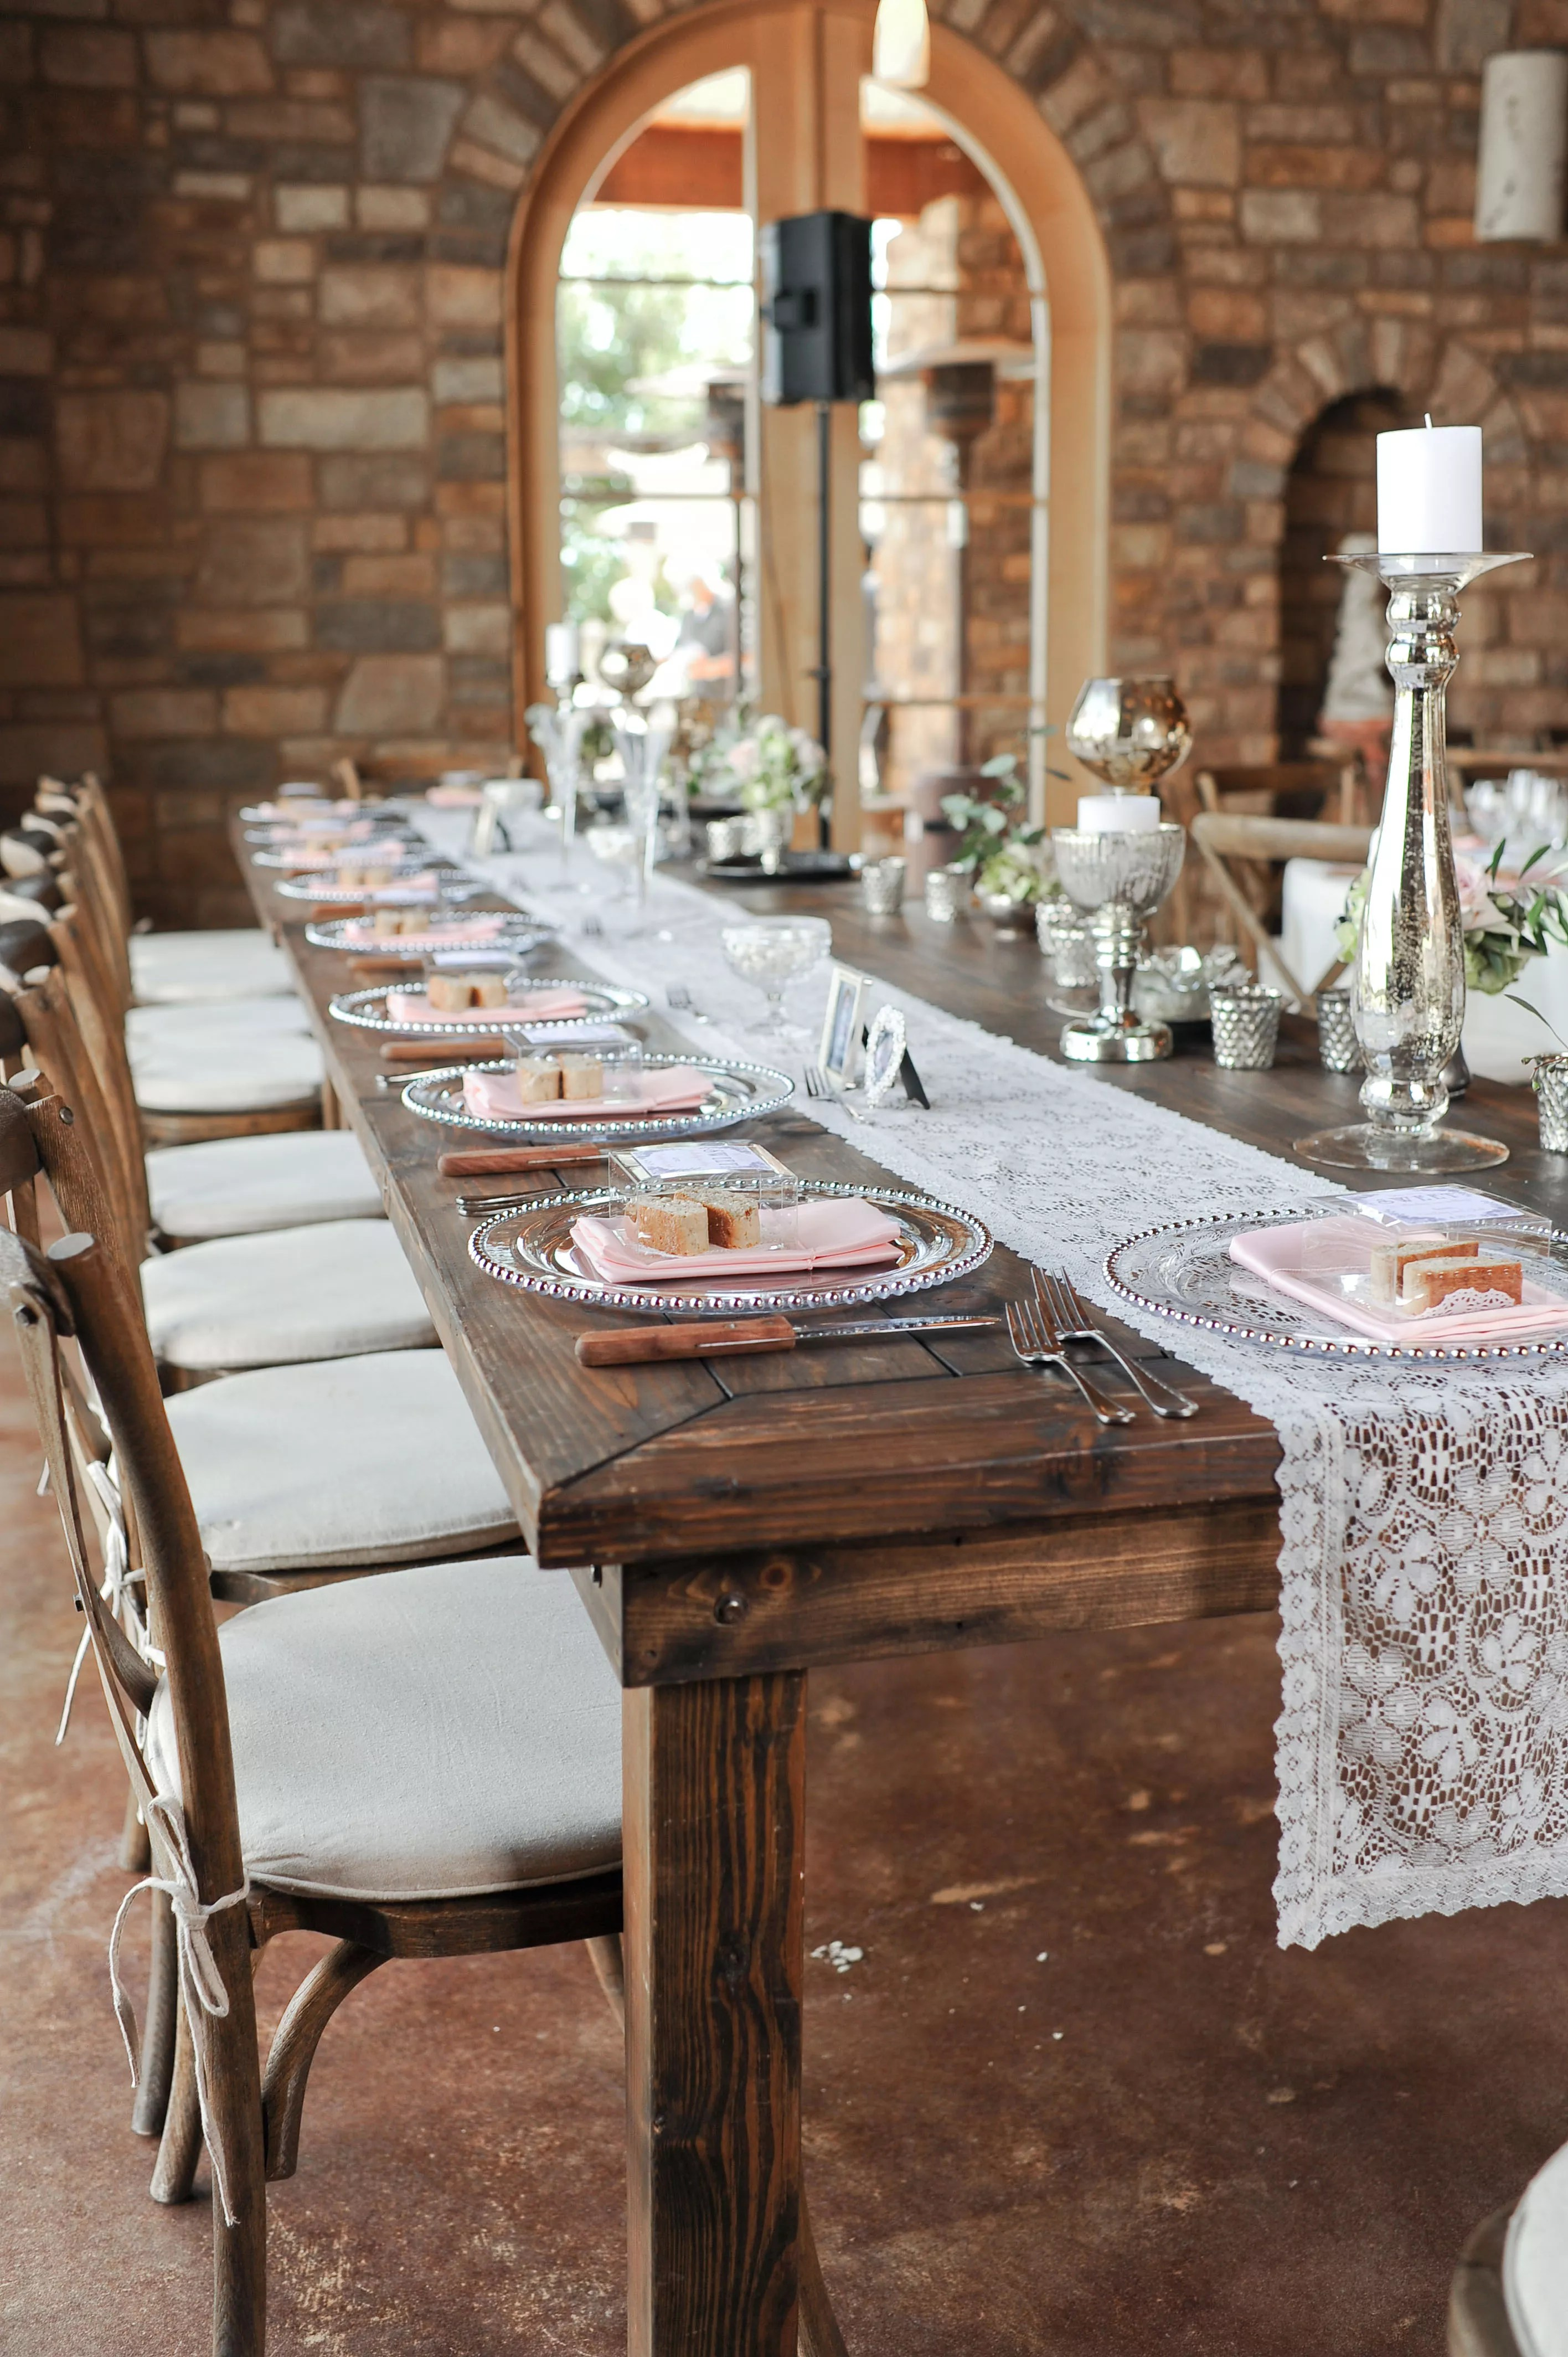 Farmhouse Style Table Runners Rustic Wooden Farm Tables With Lace Runners